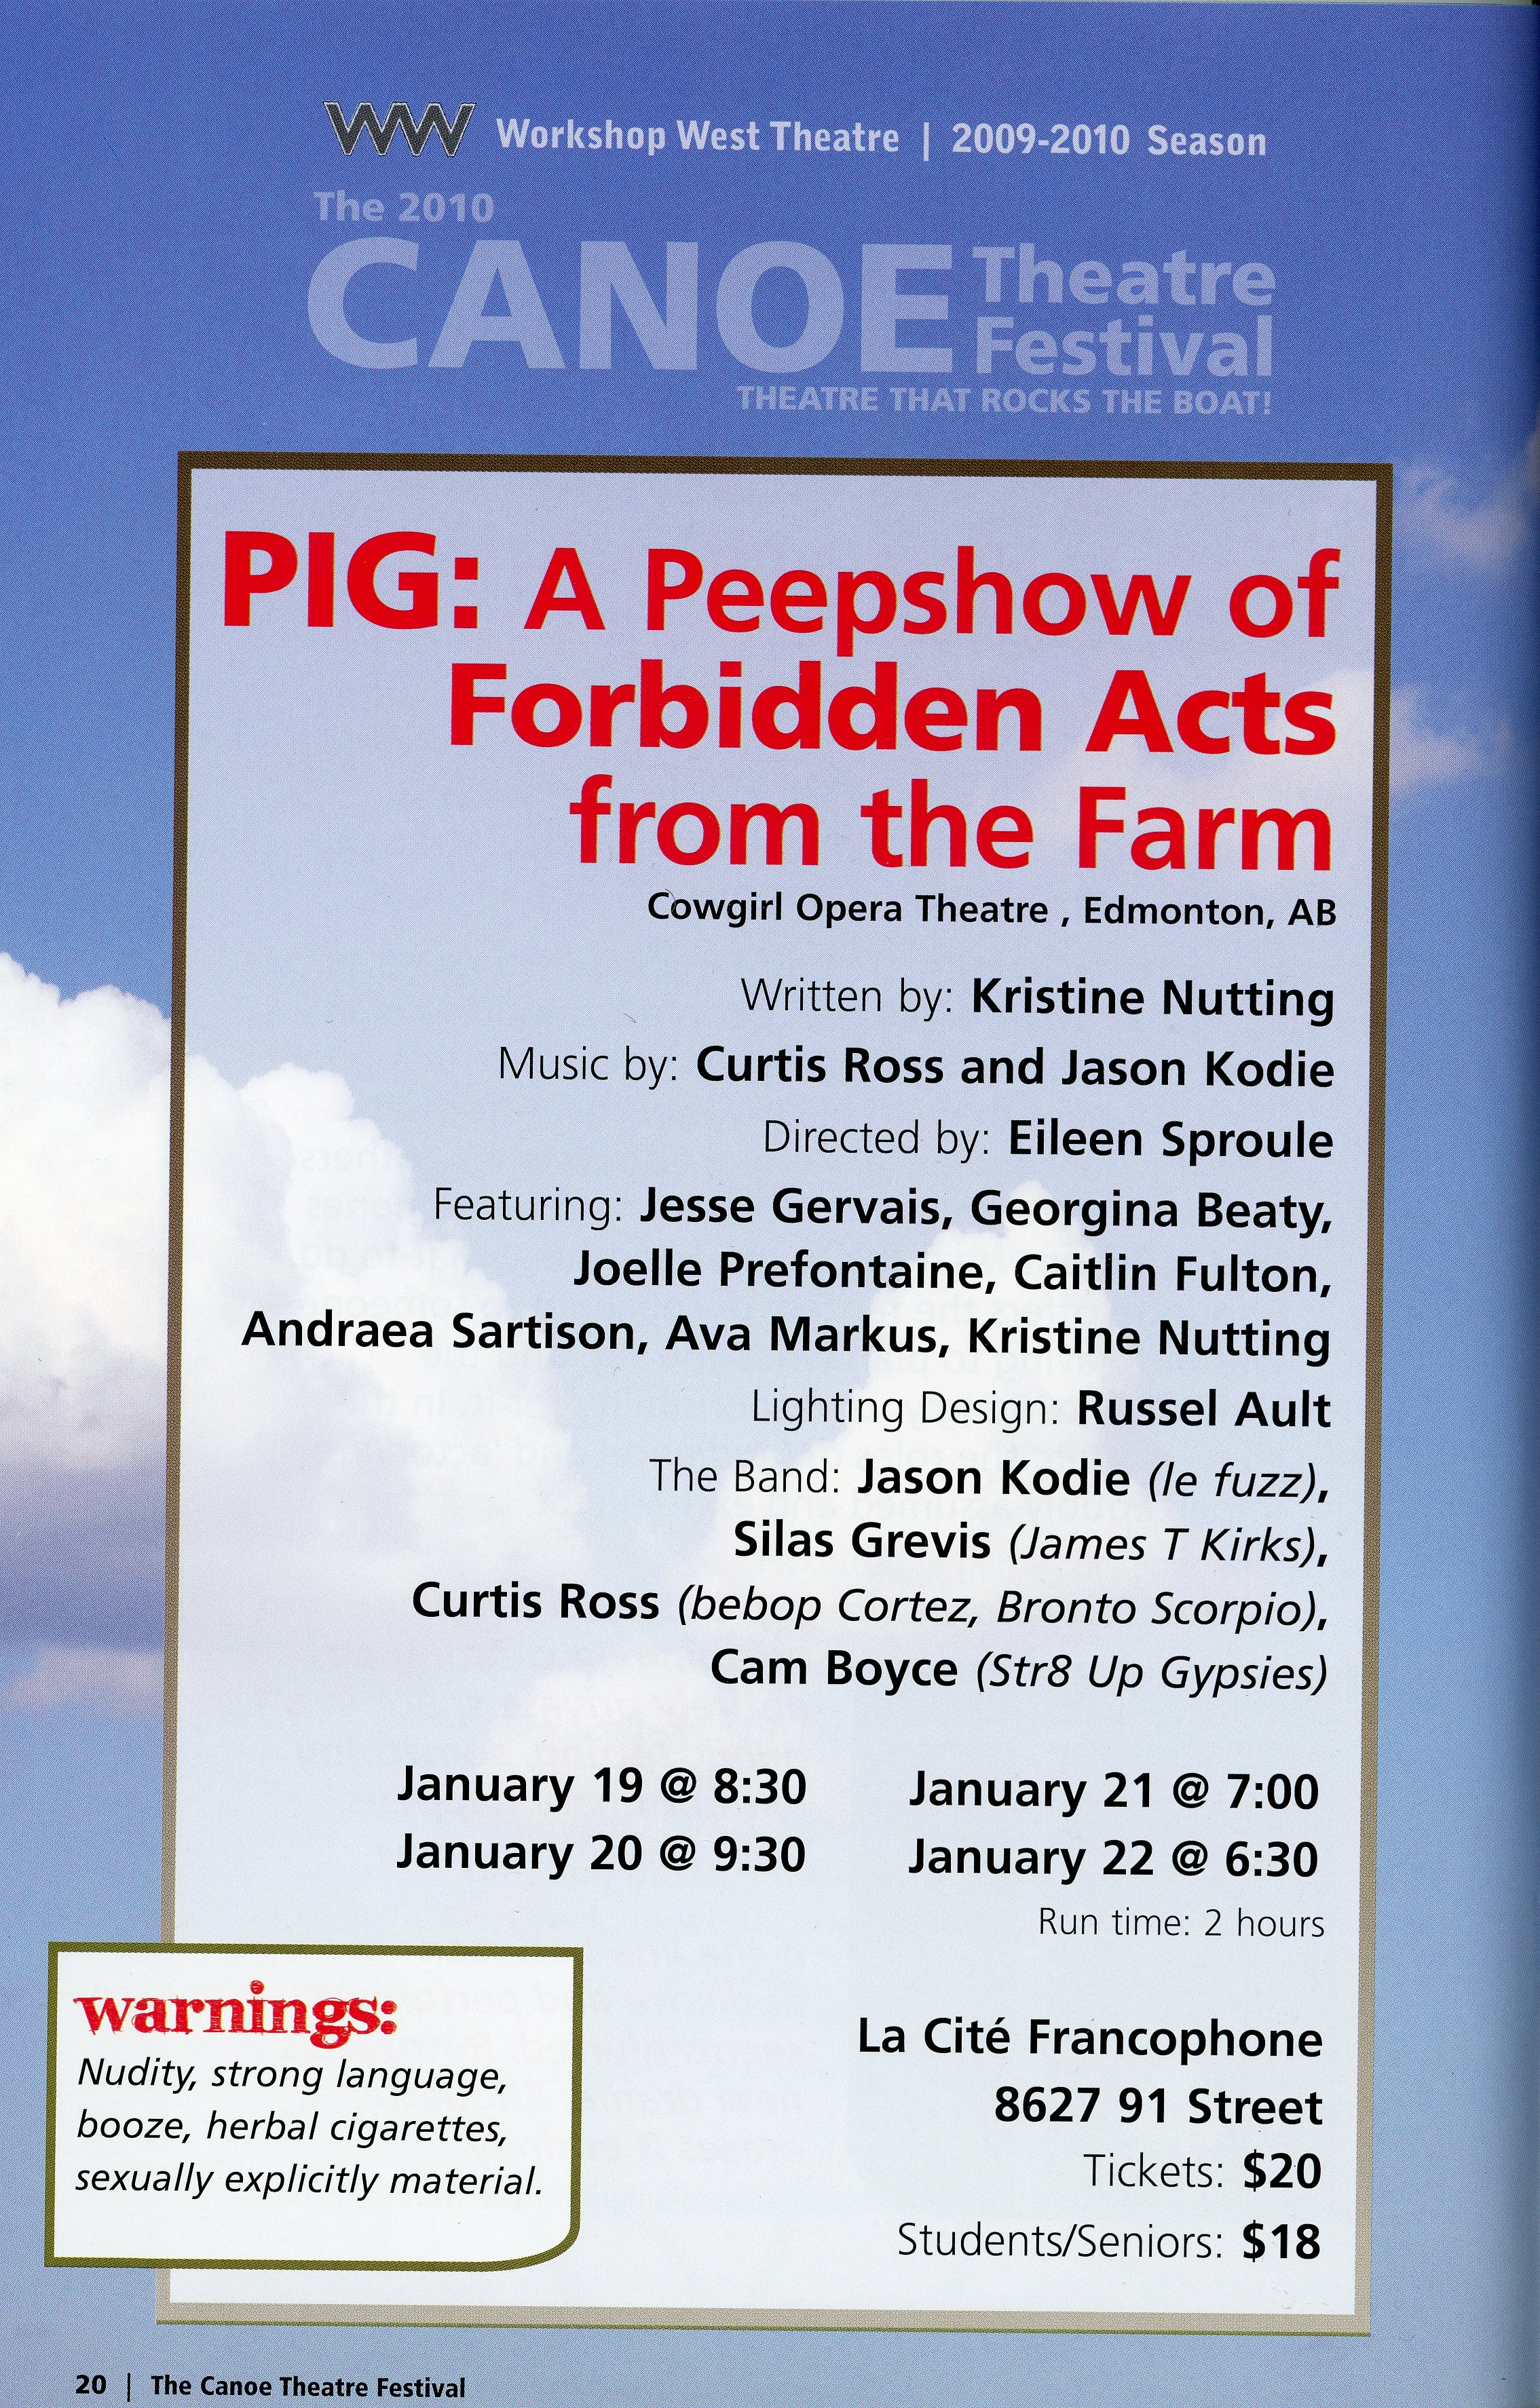 The Canoe Festival (2009-2010)_Production Information-PIG A peepshow of Forbidden Acts From the Farm_JPEG.jpg